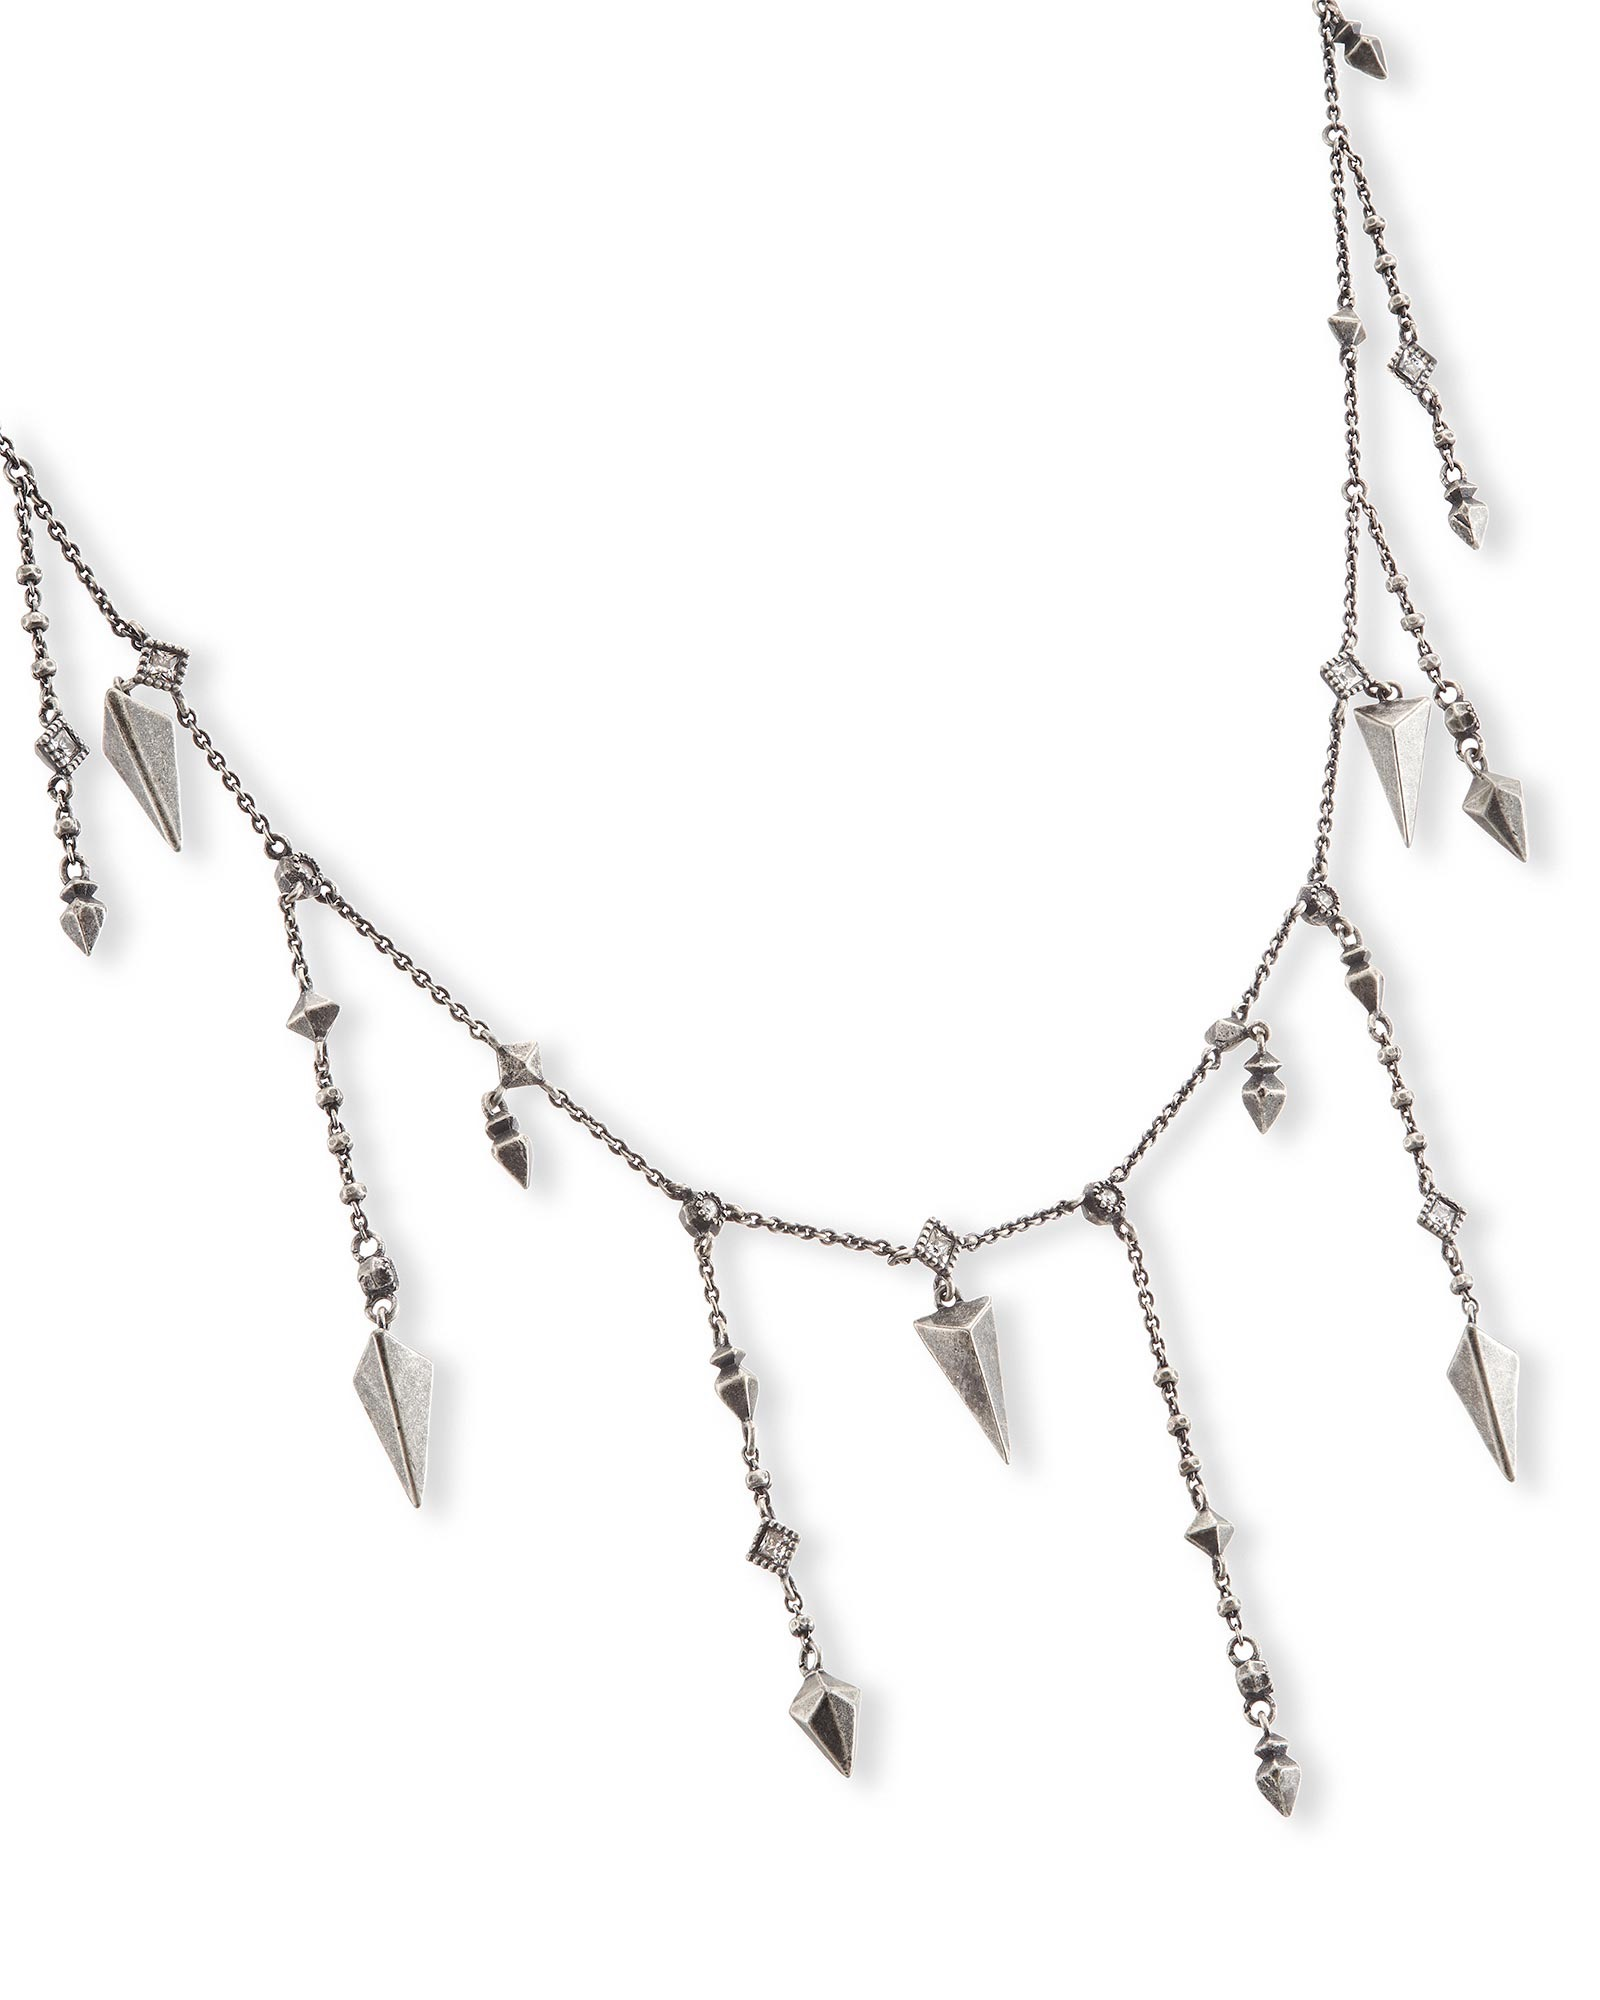 Loralei Long Necklace in Antique Silver